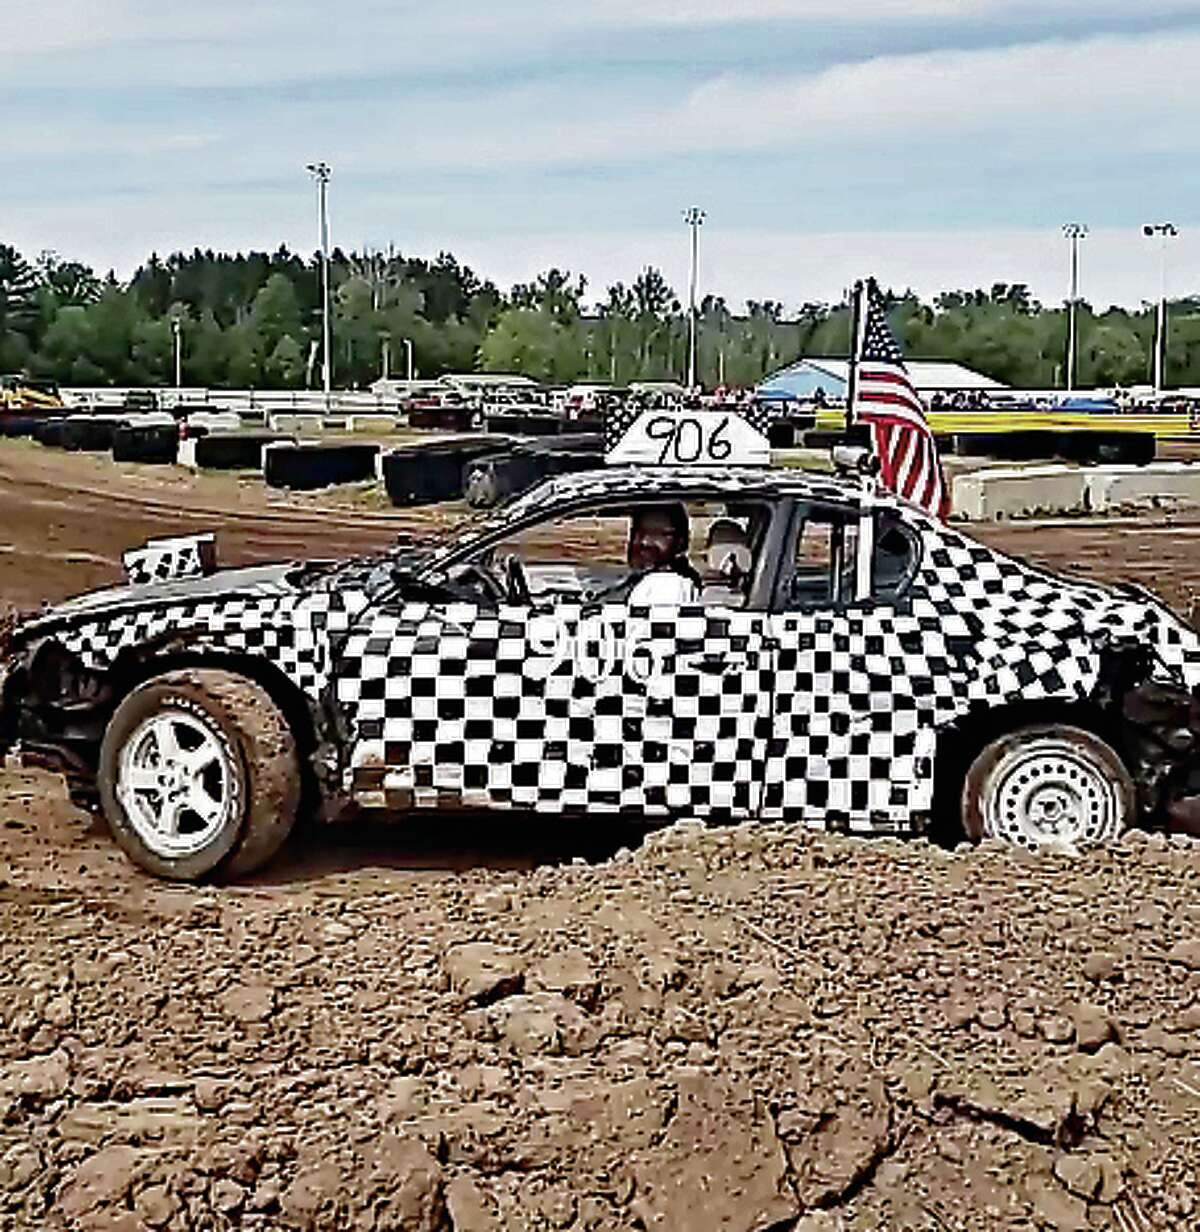 Pastor Jamie Parlette, of First Baptist Church in Bear Lake, conducted the blessing on Sunday afternoon and tested out the track at the Manistee County Fairgrounds in vehicle Number 906 during a Facebook live video from the event.